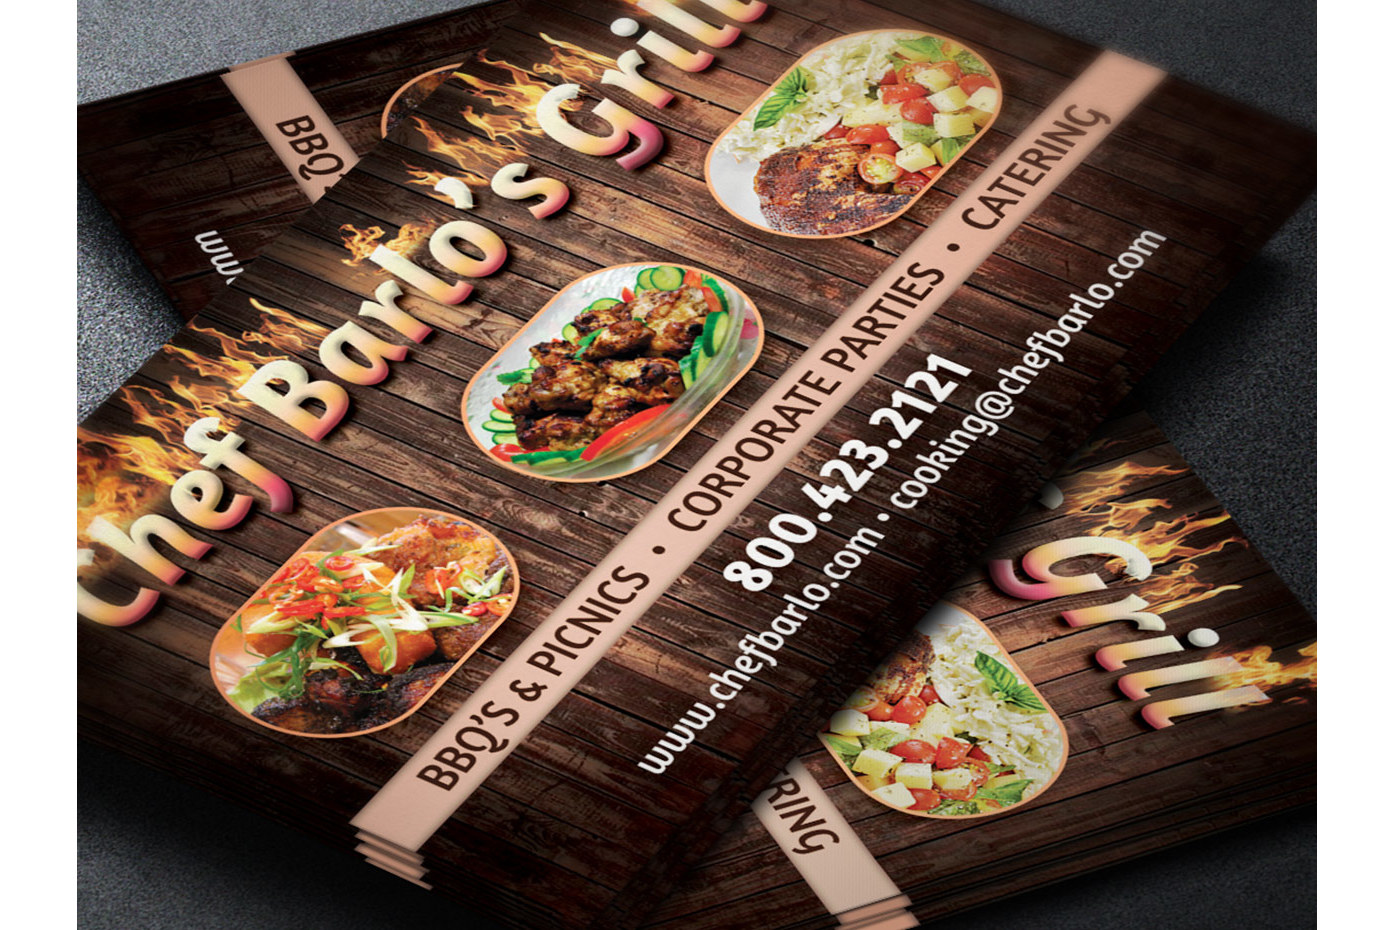 Chef Business Card Template example image 3